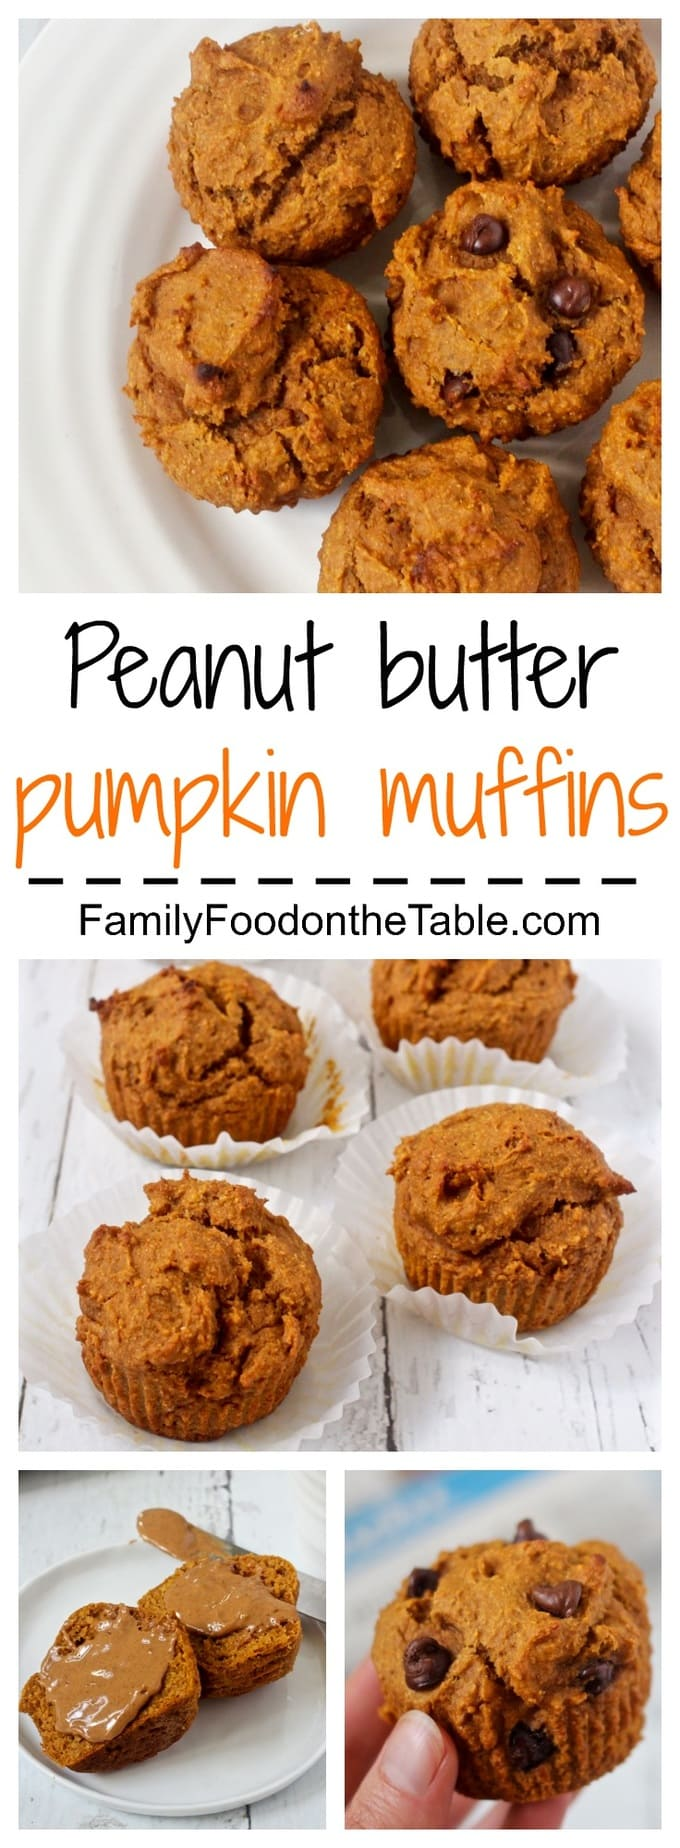 Whole wheat, naturally sweetened peanut butter pumpkin muffins, with optional chocolate chips - great kids snack or school lunch!